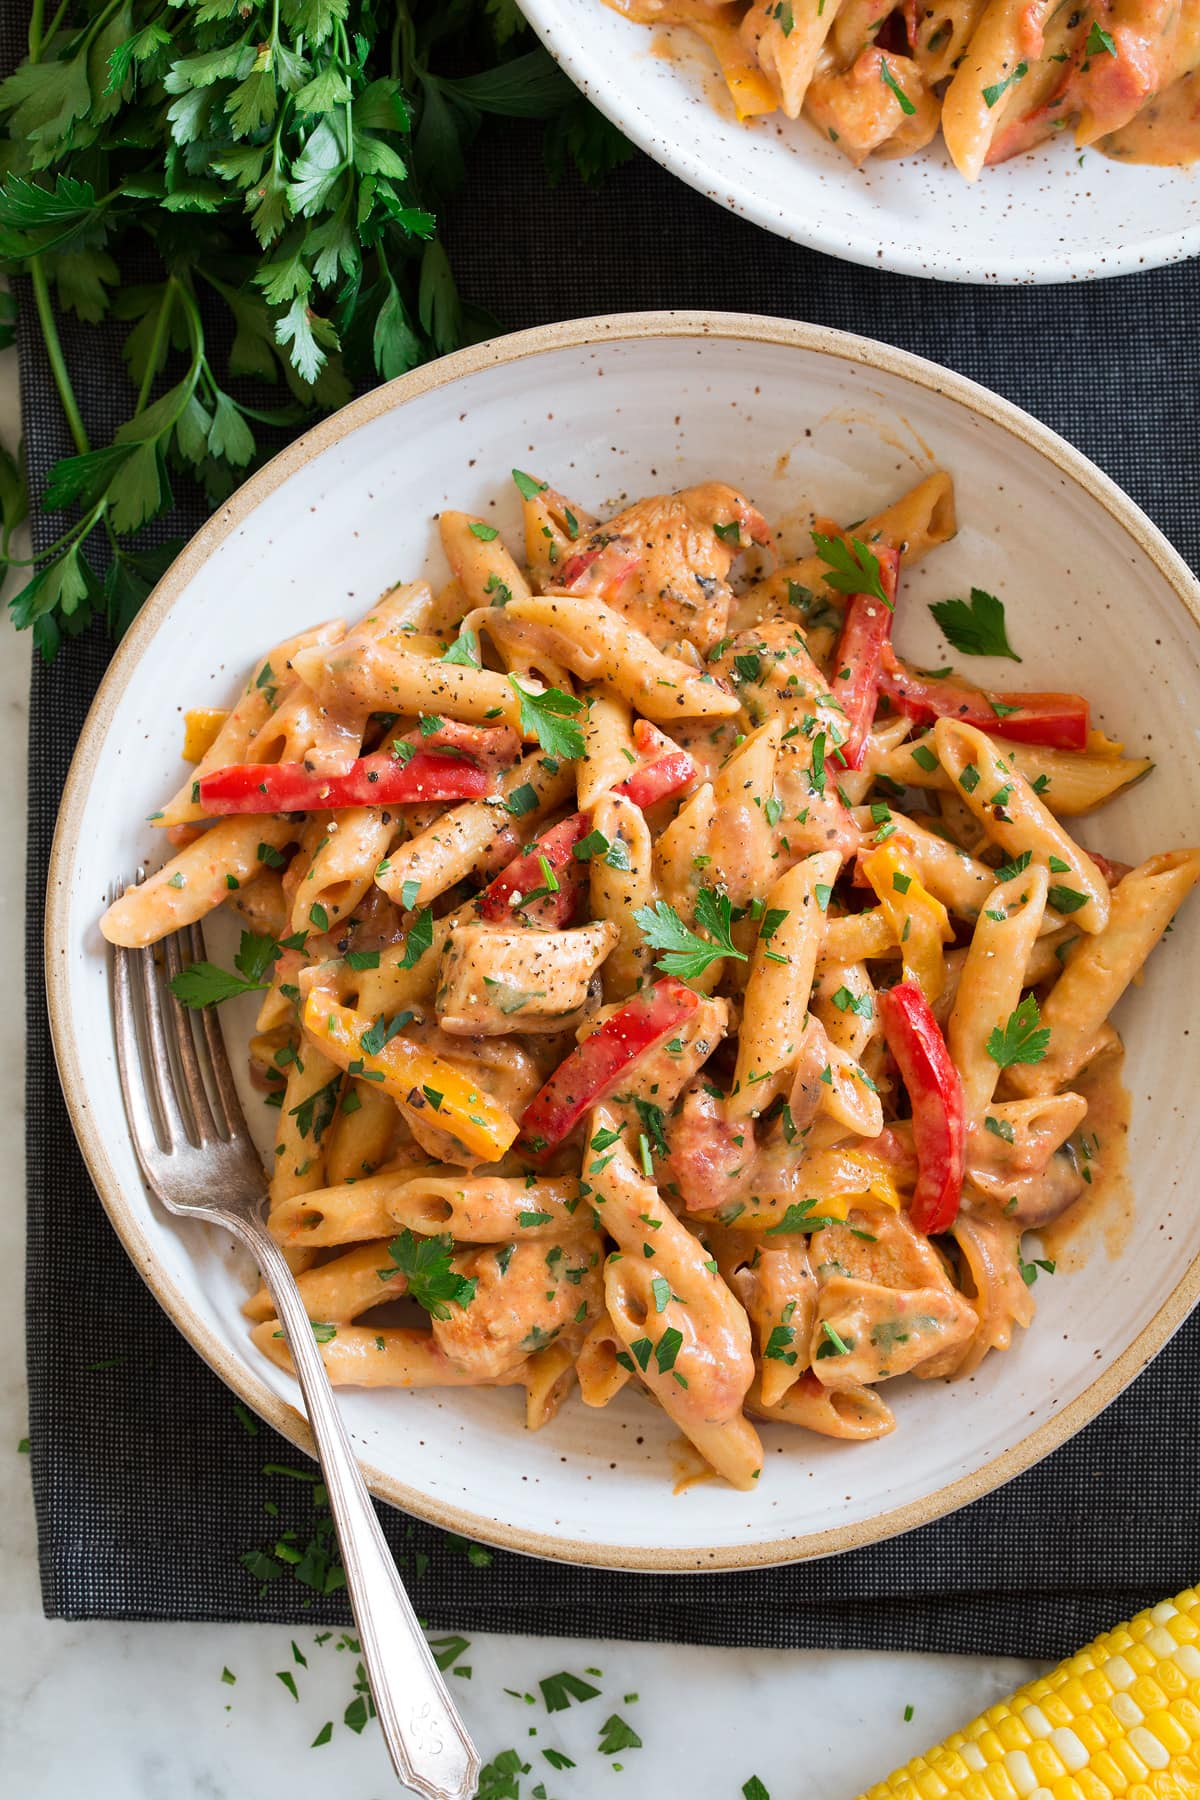 Photo: Serving of cajun chicken pasta in a bowl.